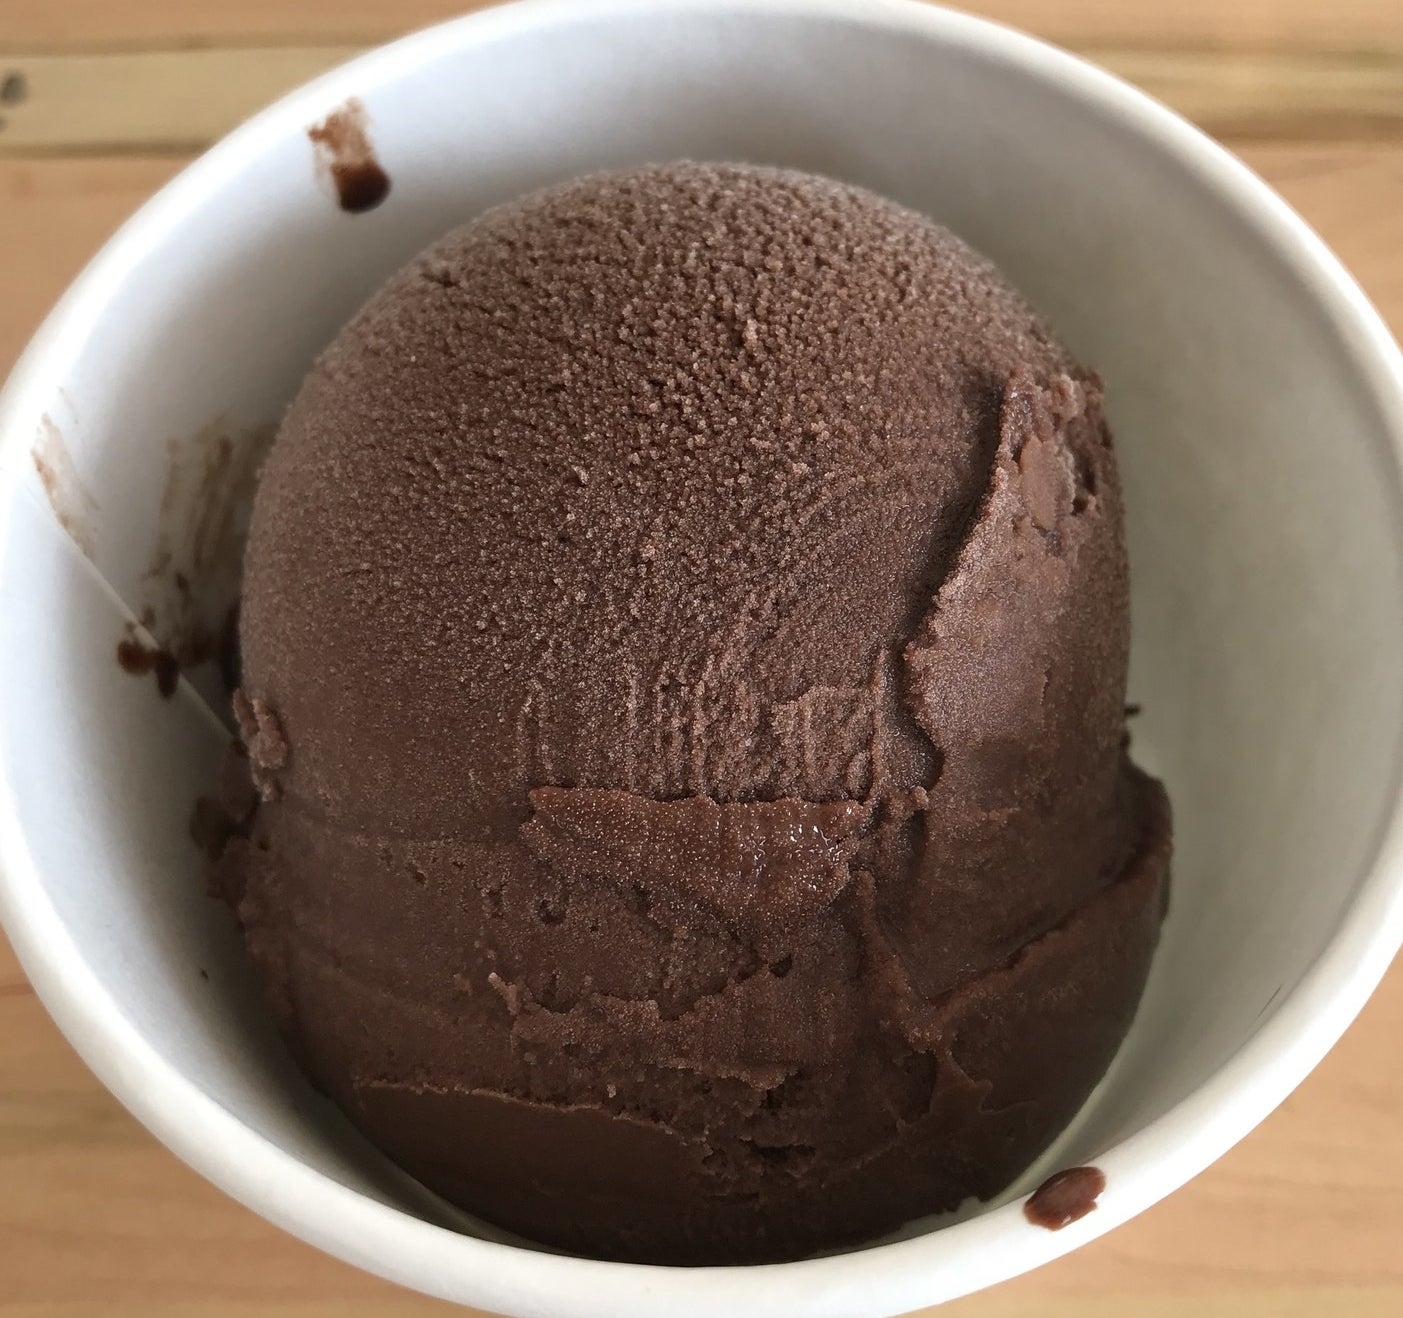 What's in it: A vegan, dairy-free sorbet of dark dark chocolate and Russian Imperial stout beer.